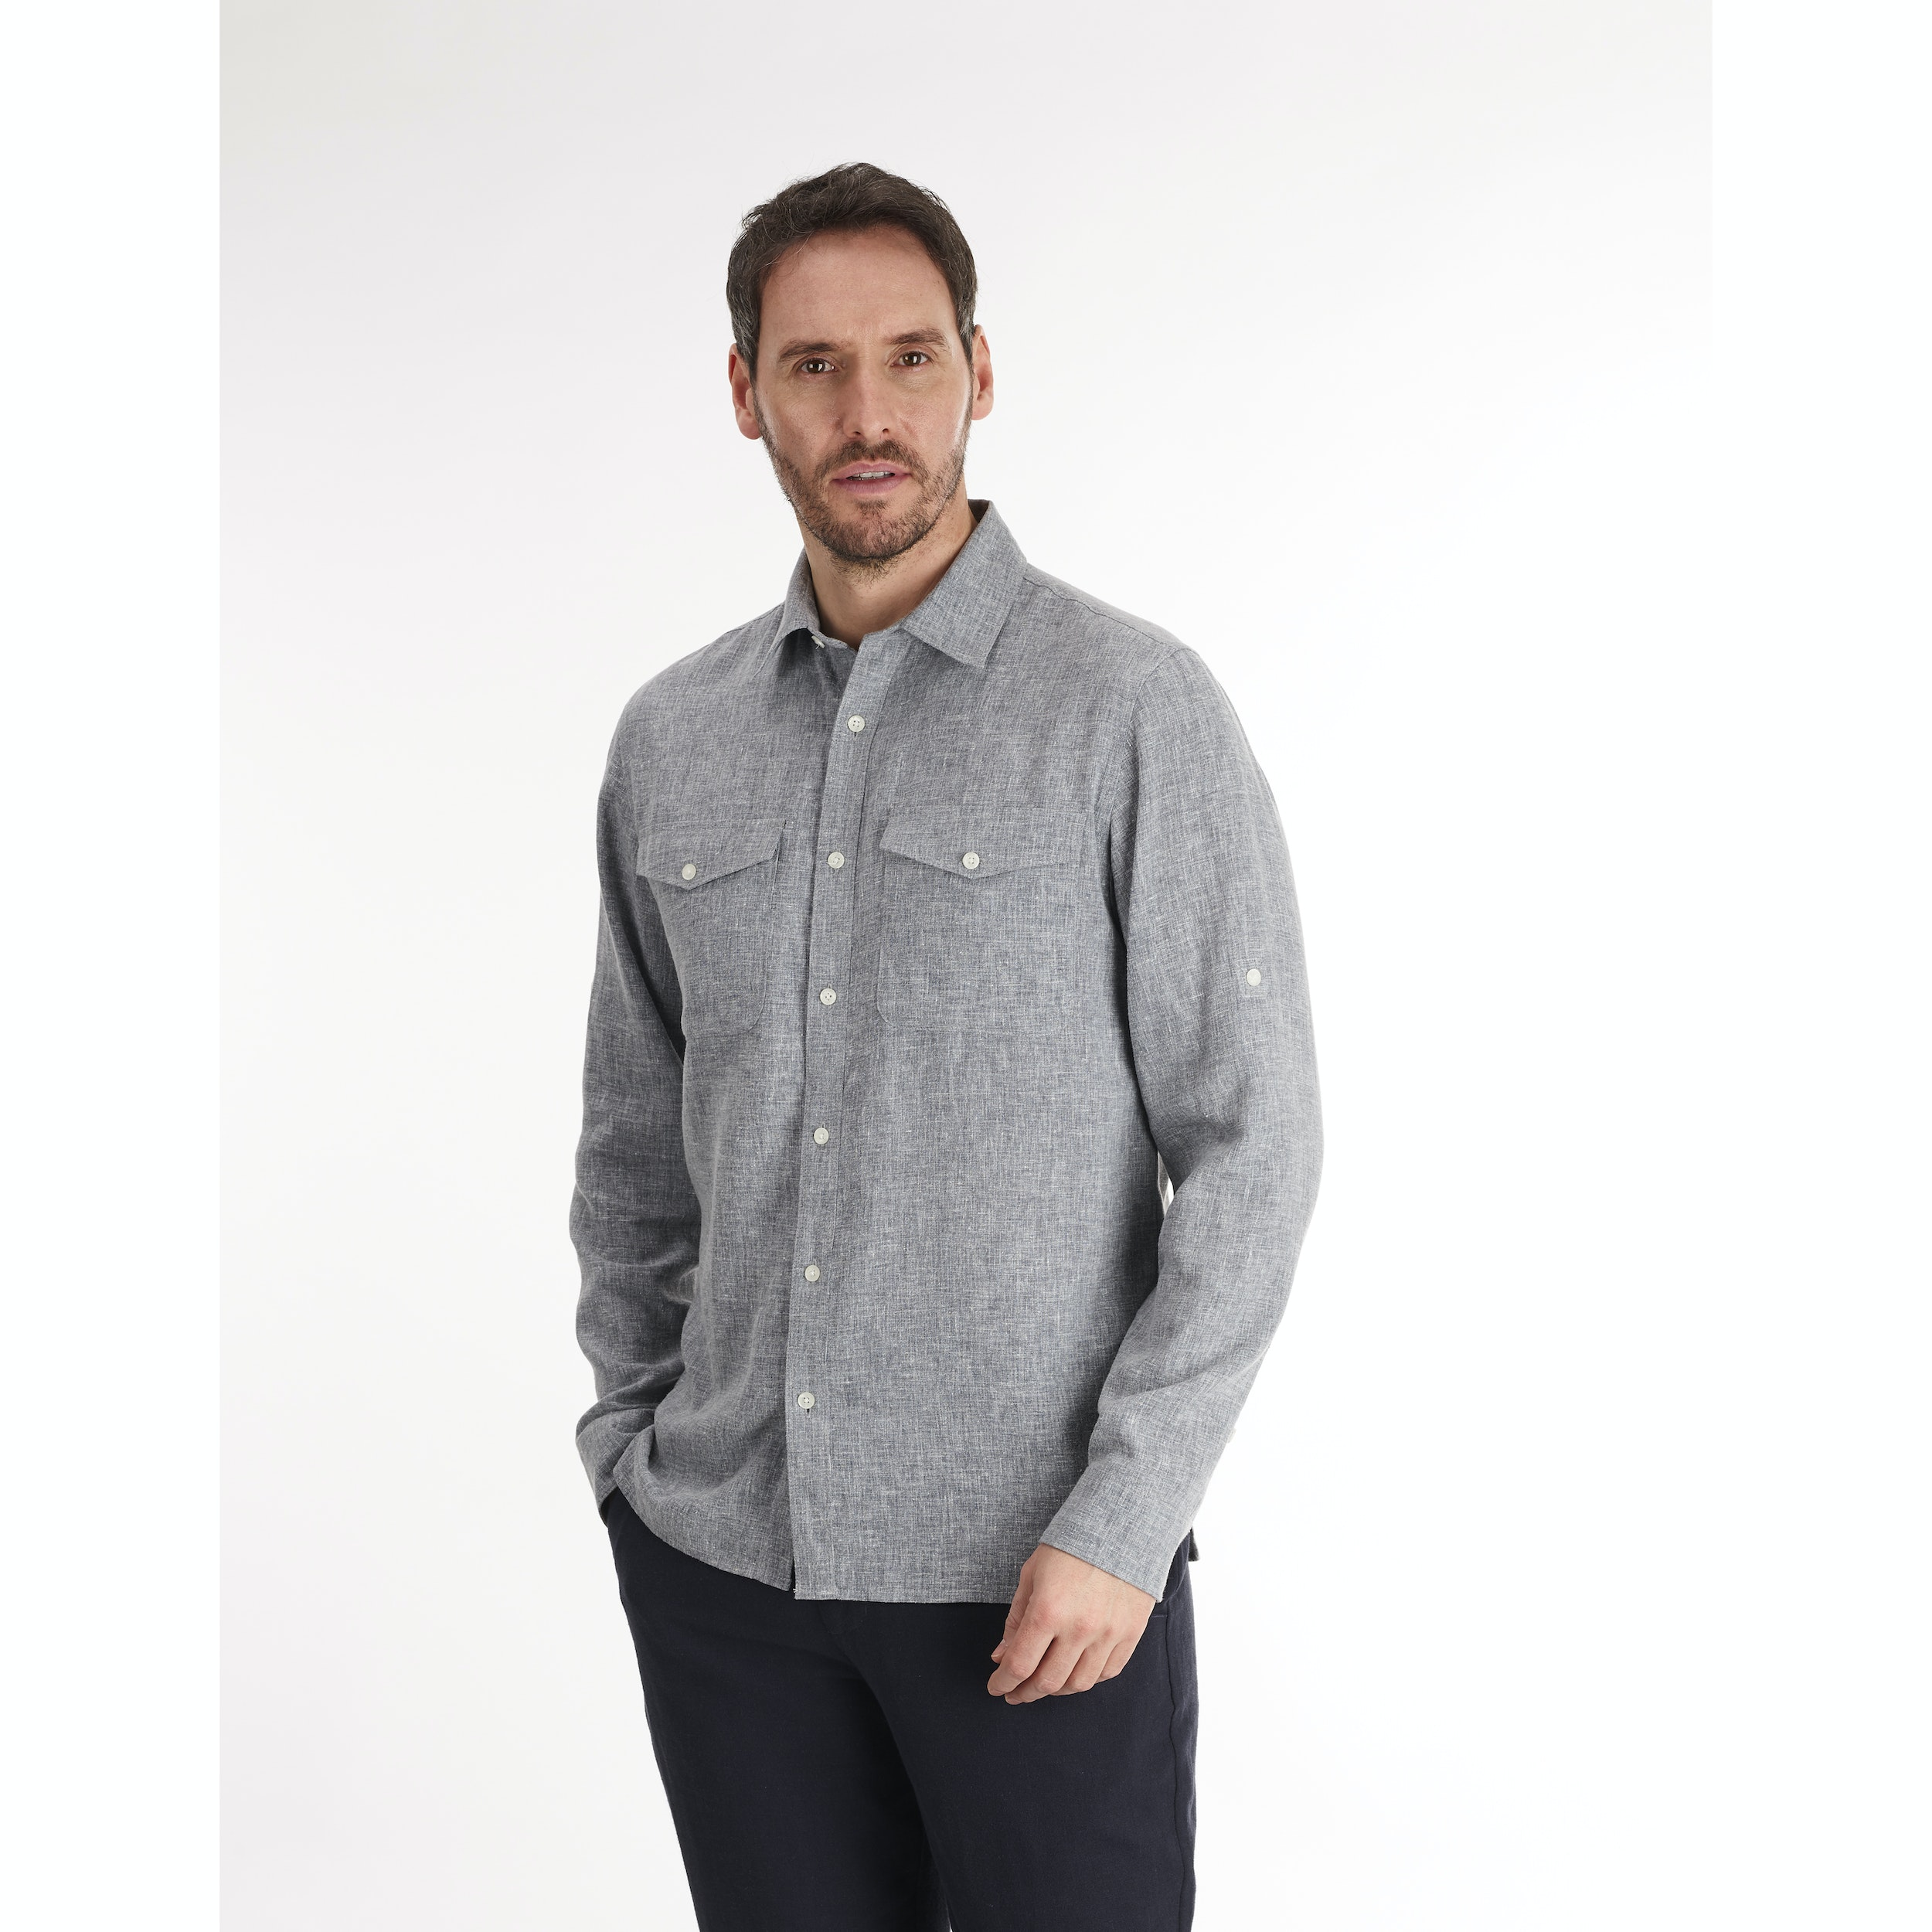 828939db Men's Maroc Shirt - Crease resistant, linen-blend shirt.